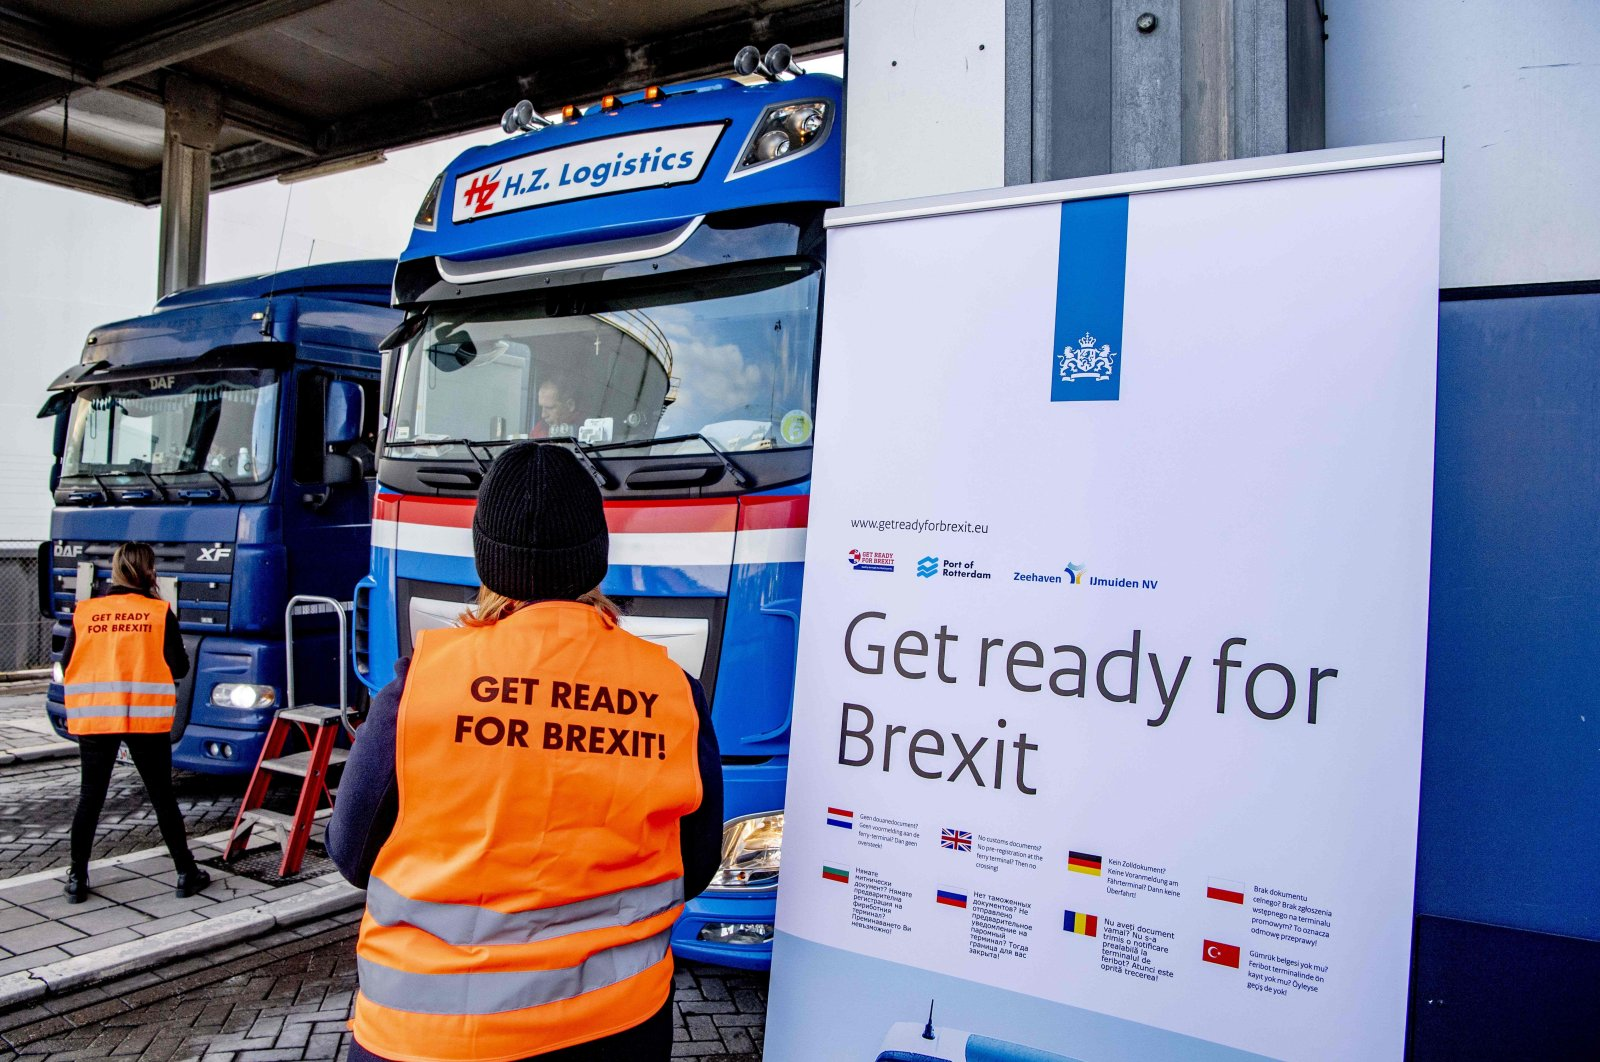 Flyers are distributed, as part of the Get Ready For Brexit campaign, to truck drivers at the terminal of a ferry operator in the port of Rotterdam on Dec. 1, 2020. (AFP Photo)